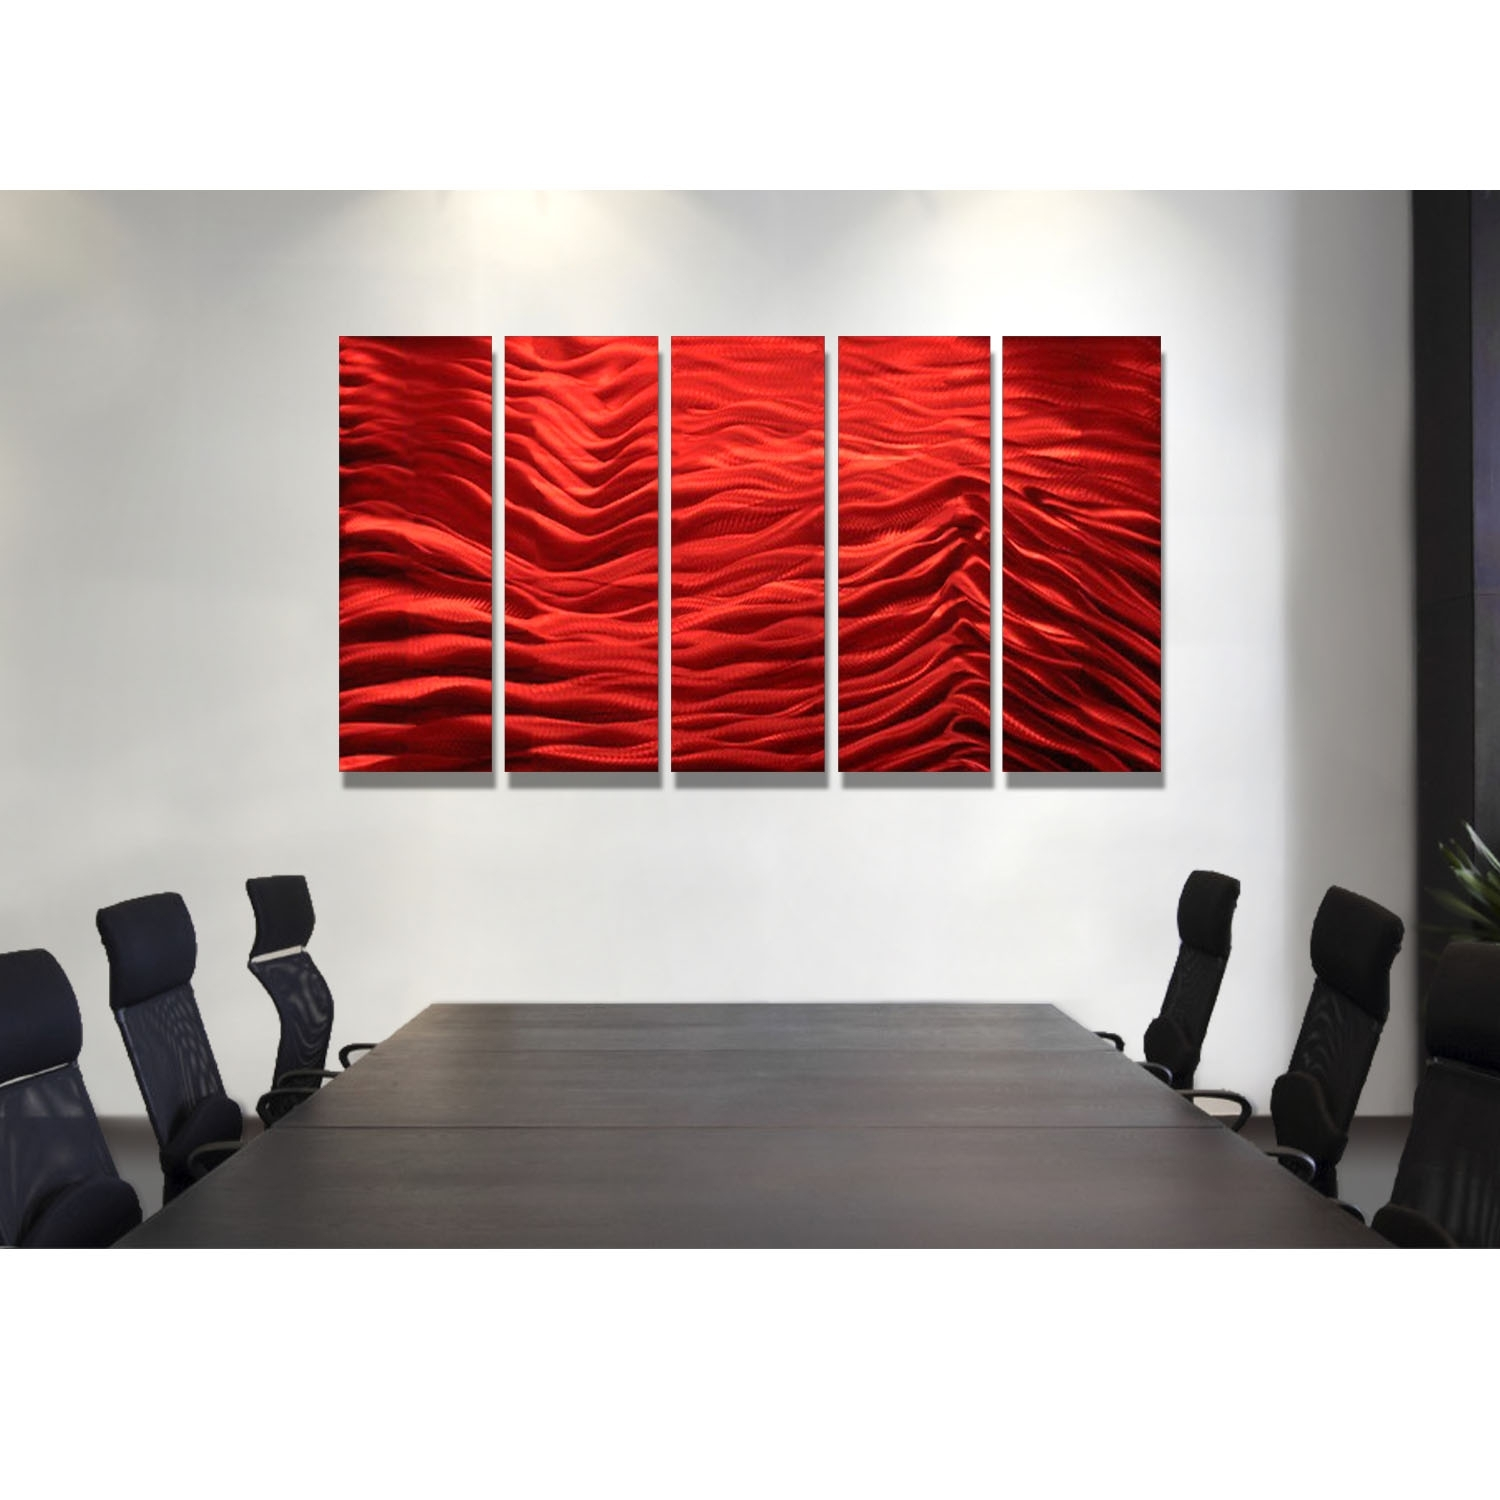 Red Inertia – Red Metal Wall Art – 5 Panel Wall Décorjon Allen Within Most Recent Panel Wall Art (View 11 of 20)